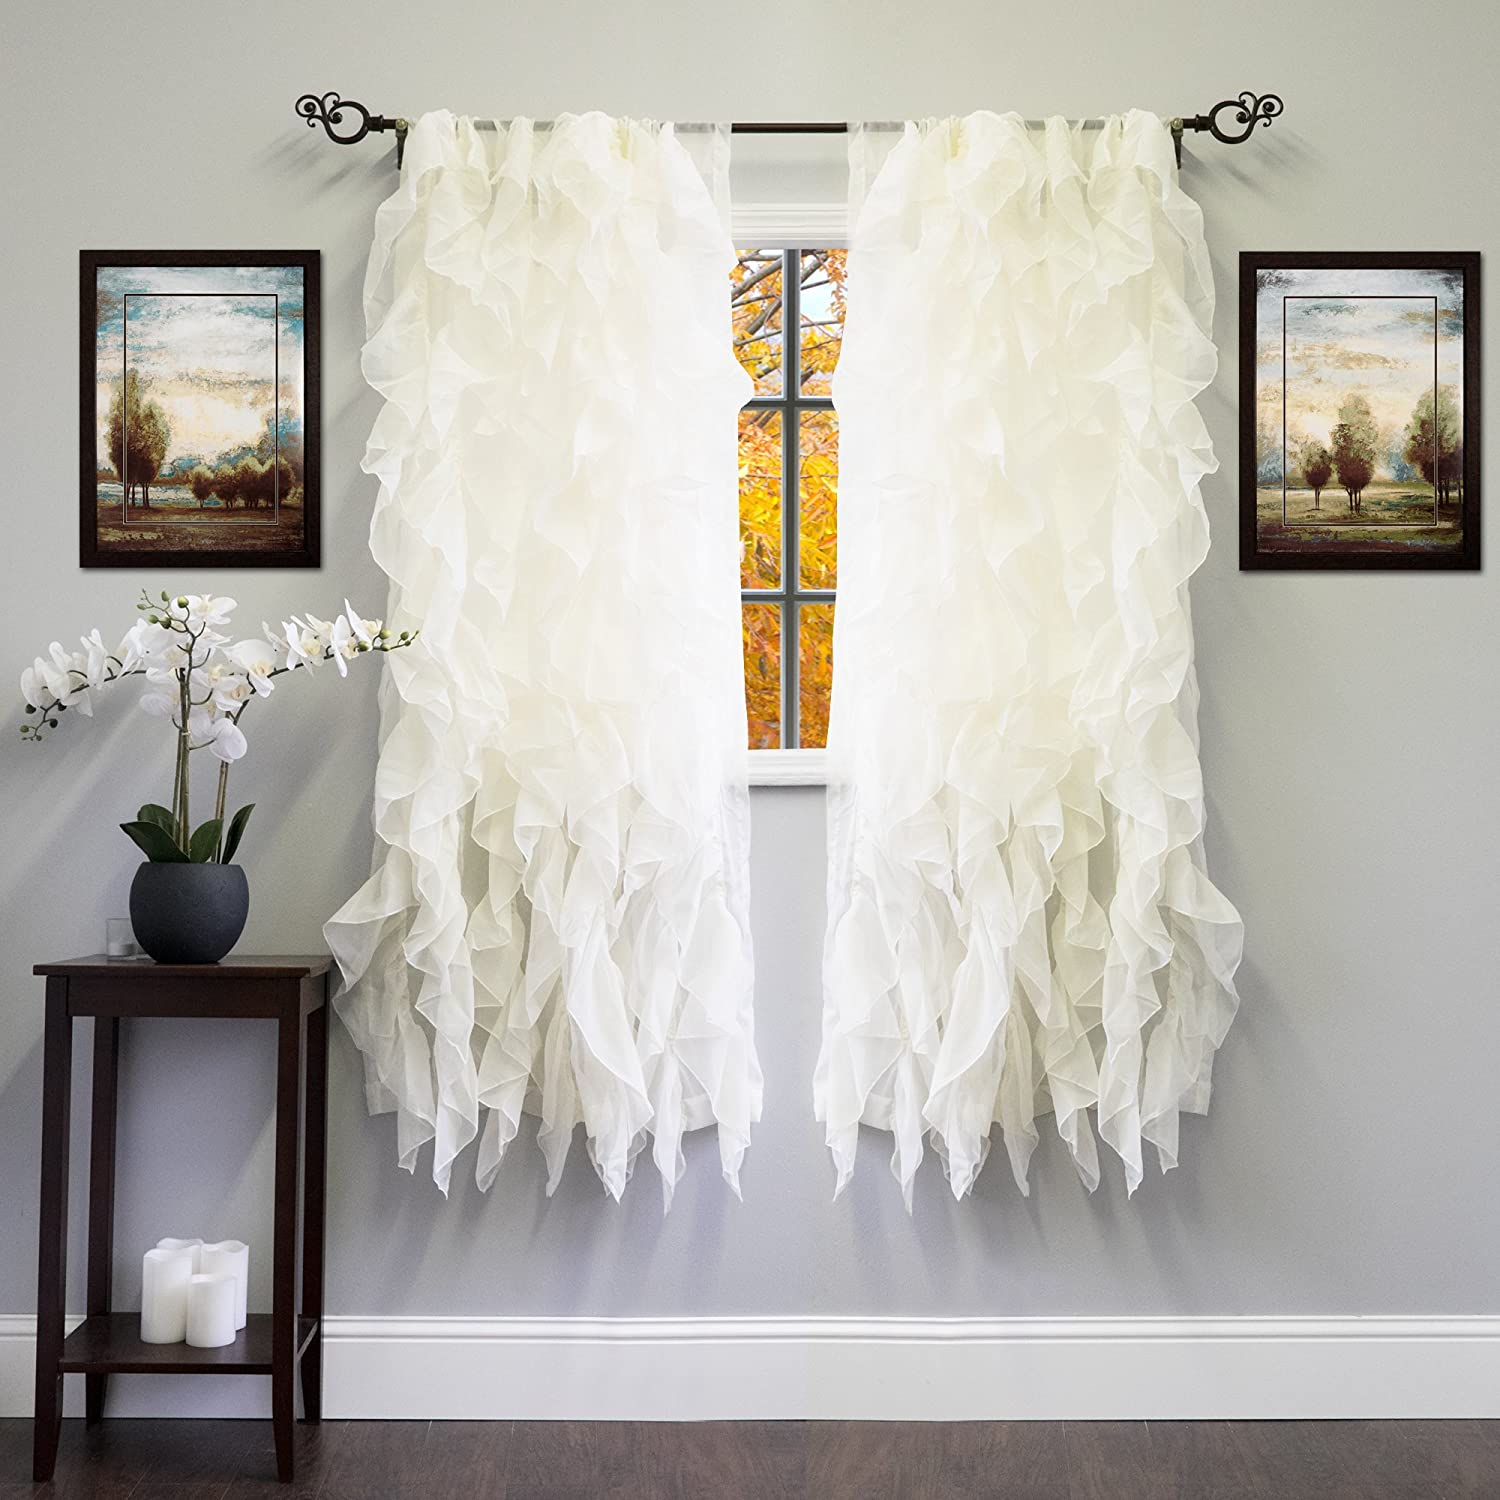 "Sweet Home Collection Sheer Voile Vertical Ruffled Window Curtain Panel, 63"" x 50"", Ivory, 2 Piece"